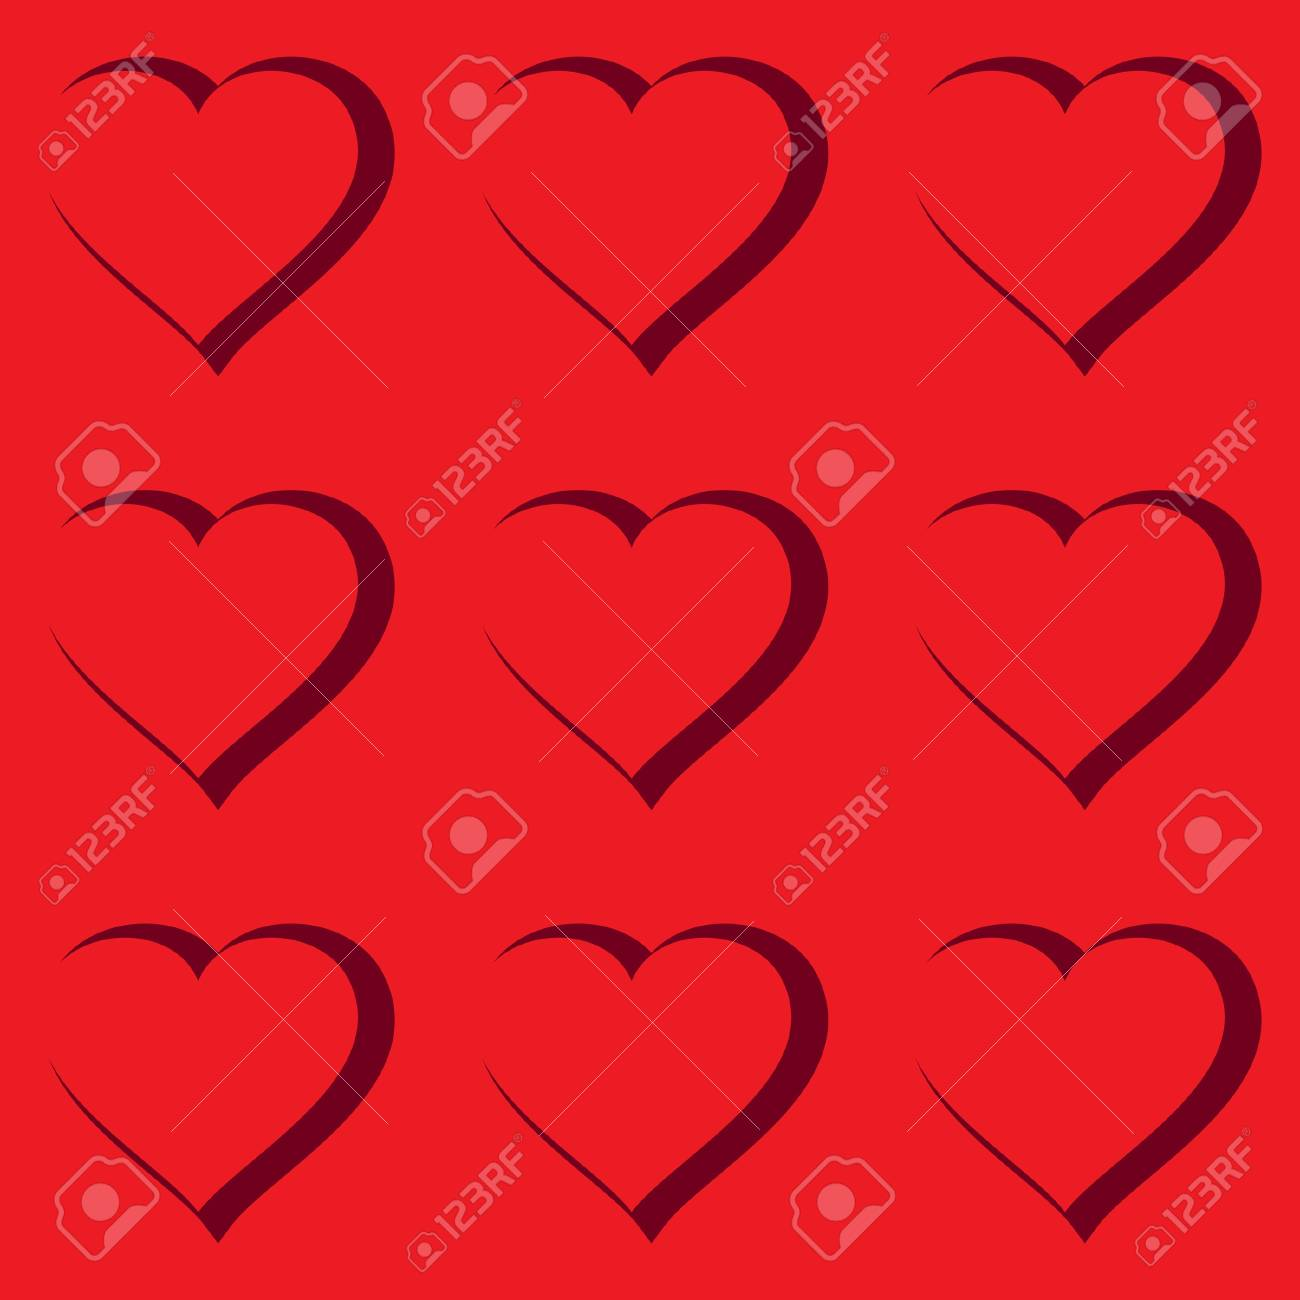 Valentine's day abstract red background with hearts. Seamless pattern. Vector illustration. Stock Vector - 8485917